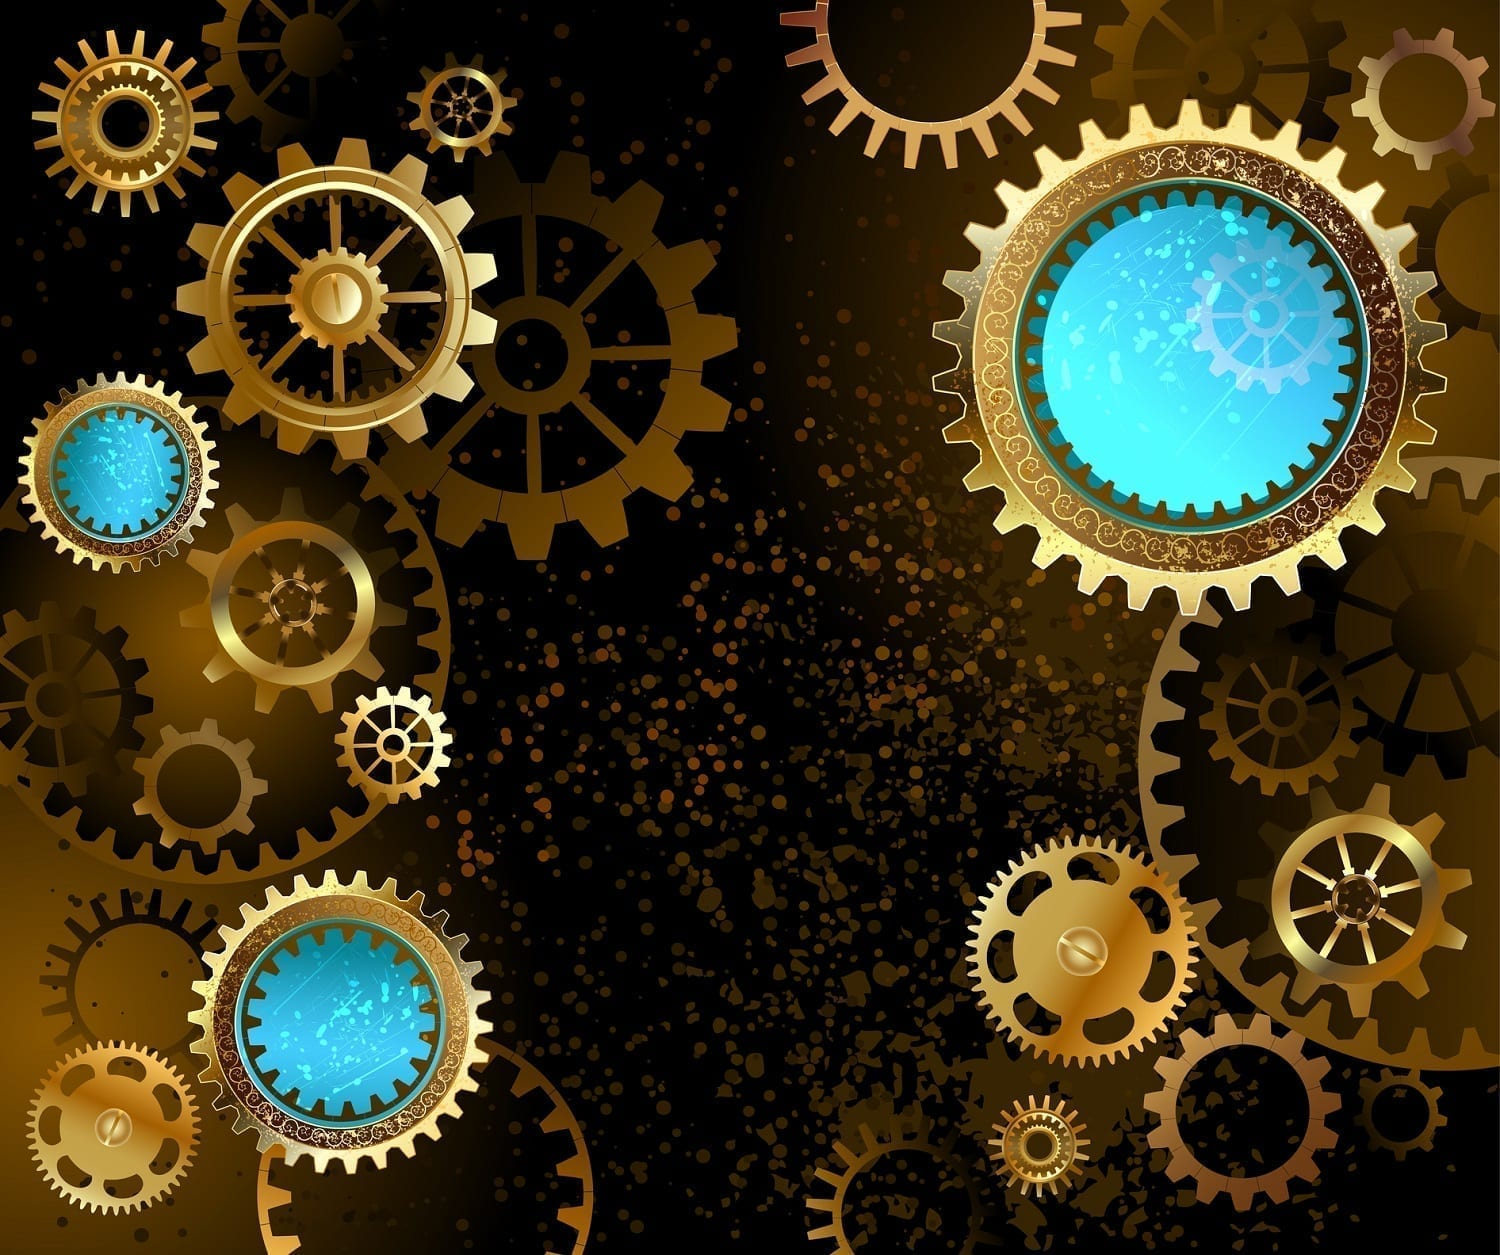 Gears and dots graphic: ID 45330029 © Nelli Valova | Dreamstime.com